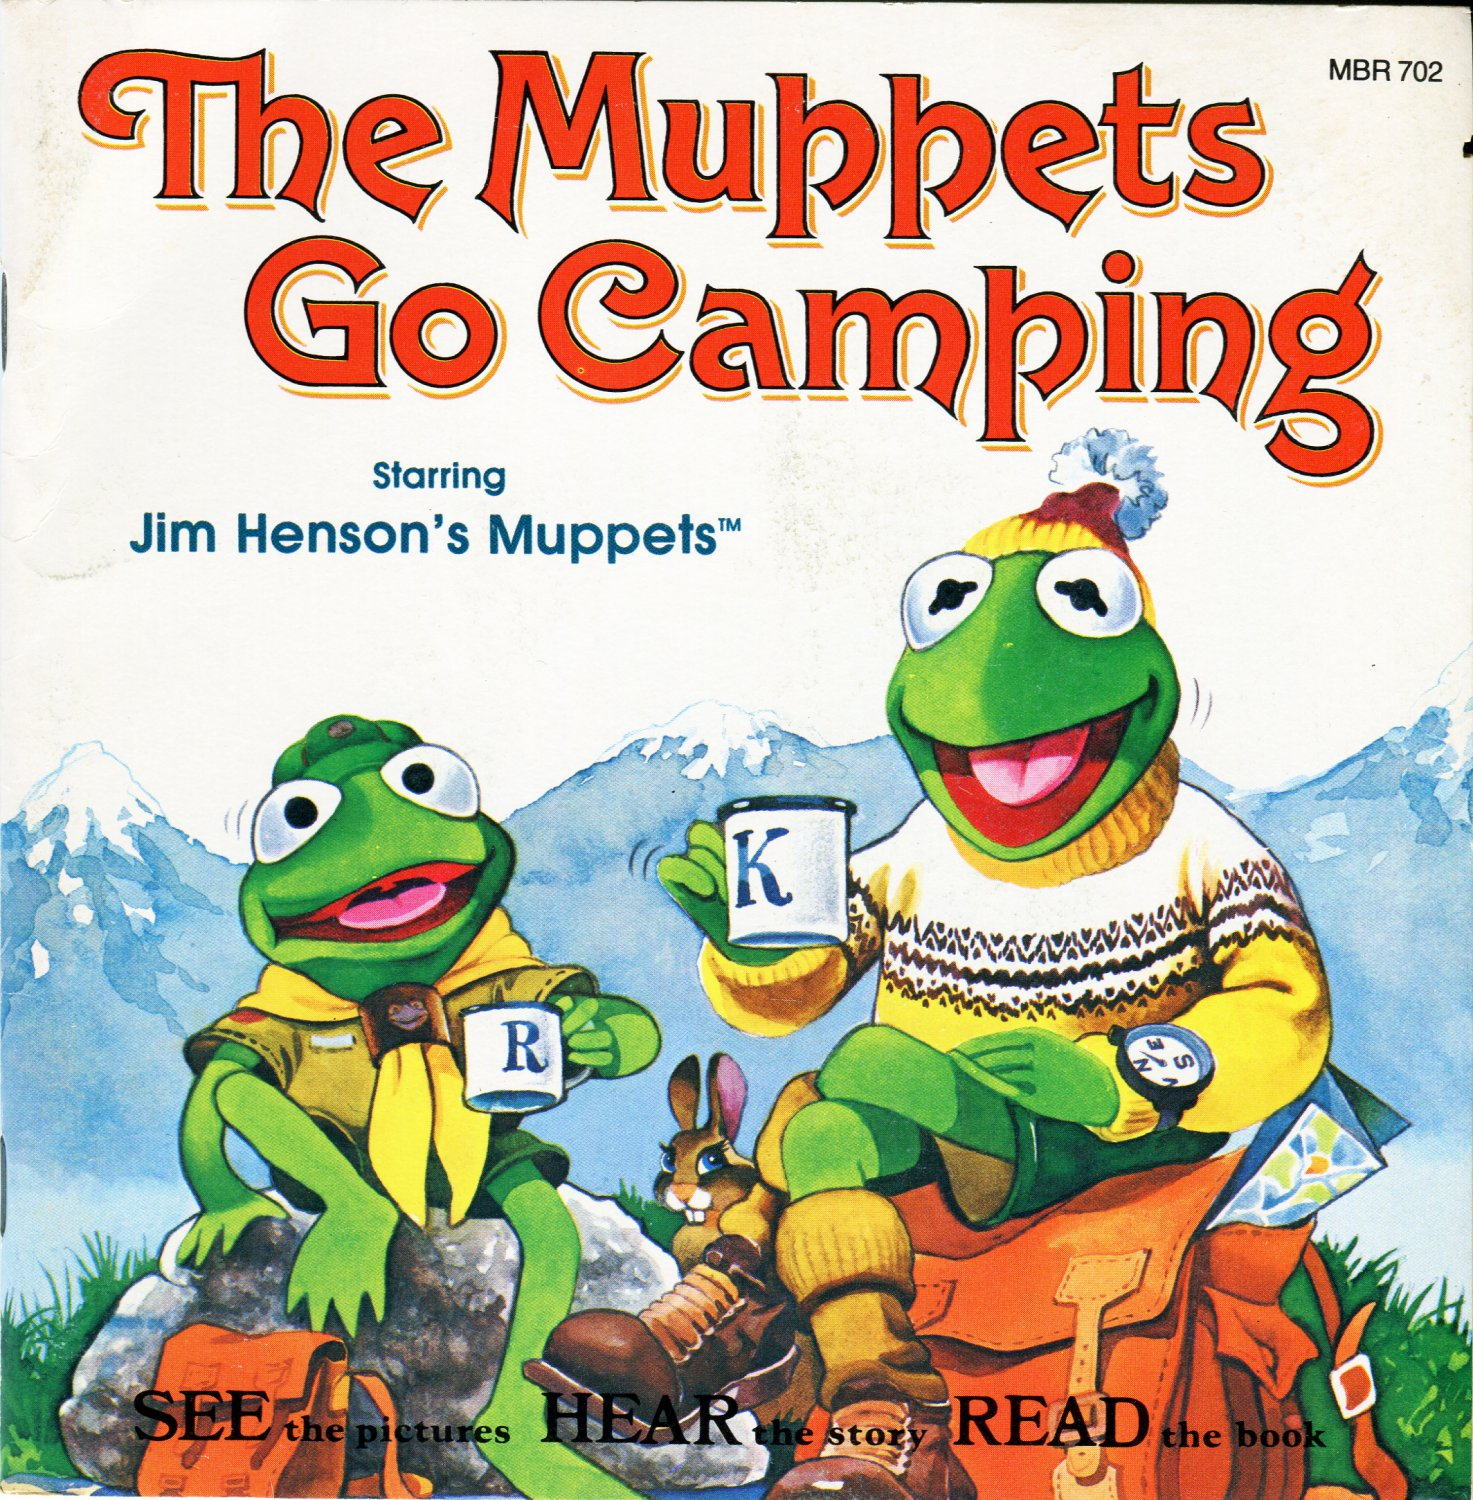 The Muppets Go Camping - See-Hear-Read Soundtrack, Kermit The Frog EP/CD